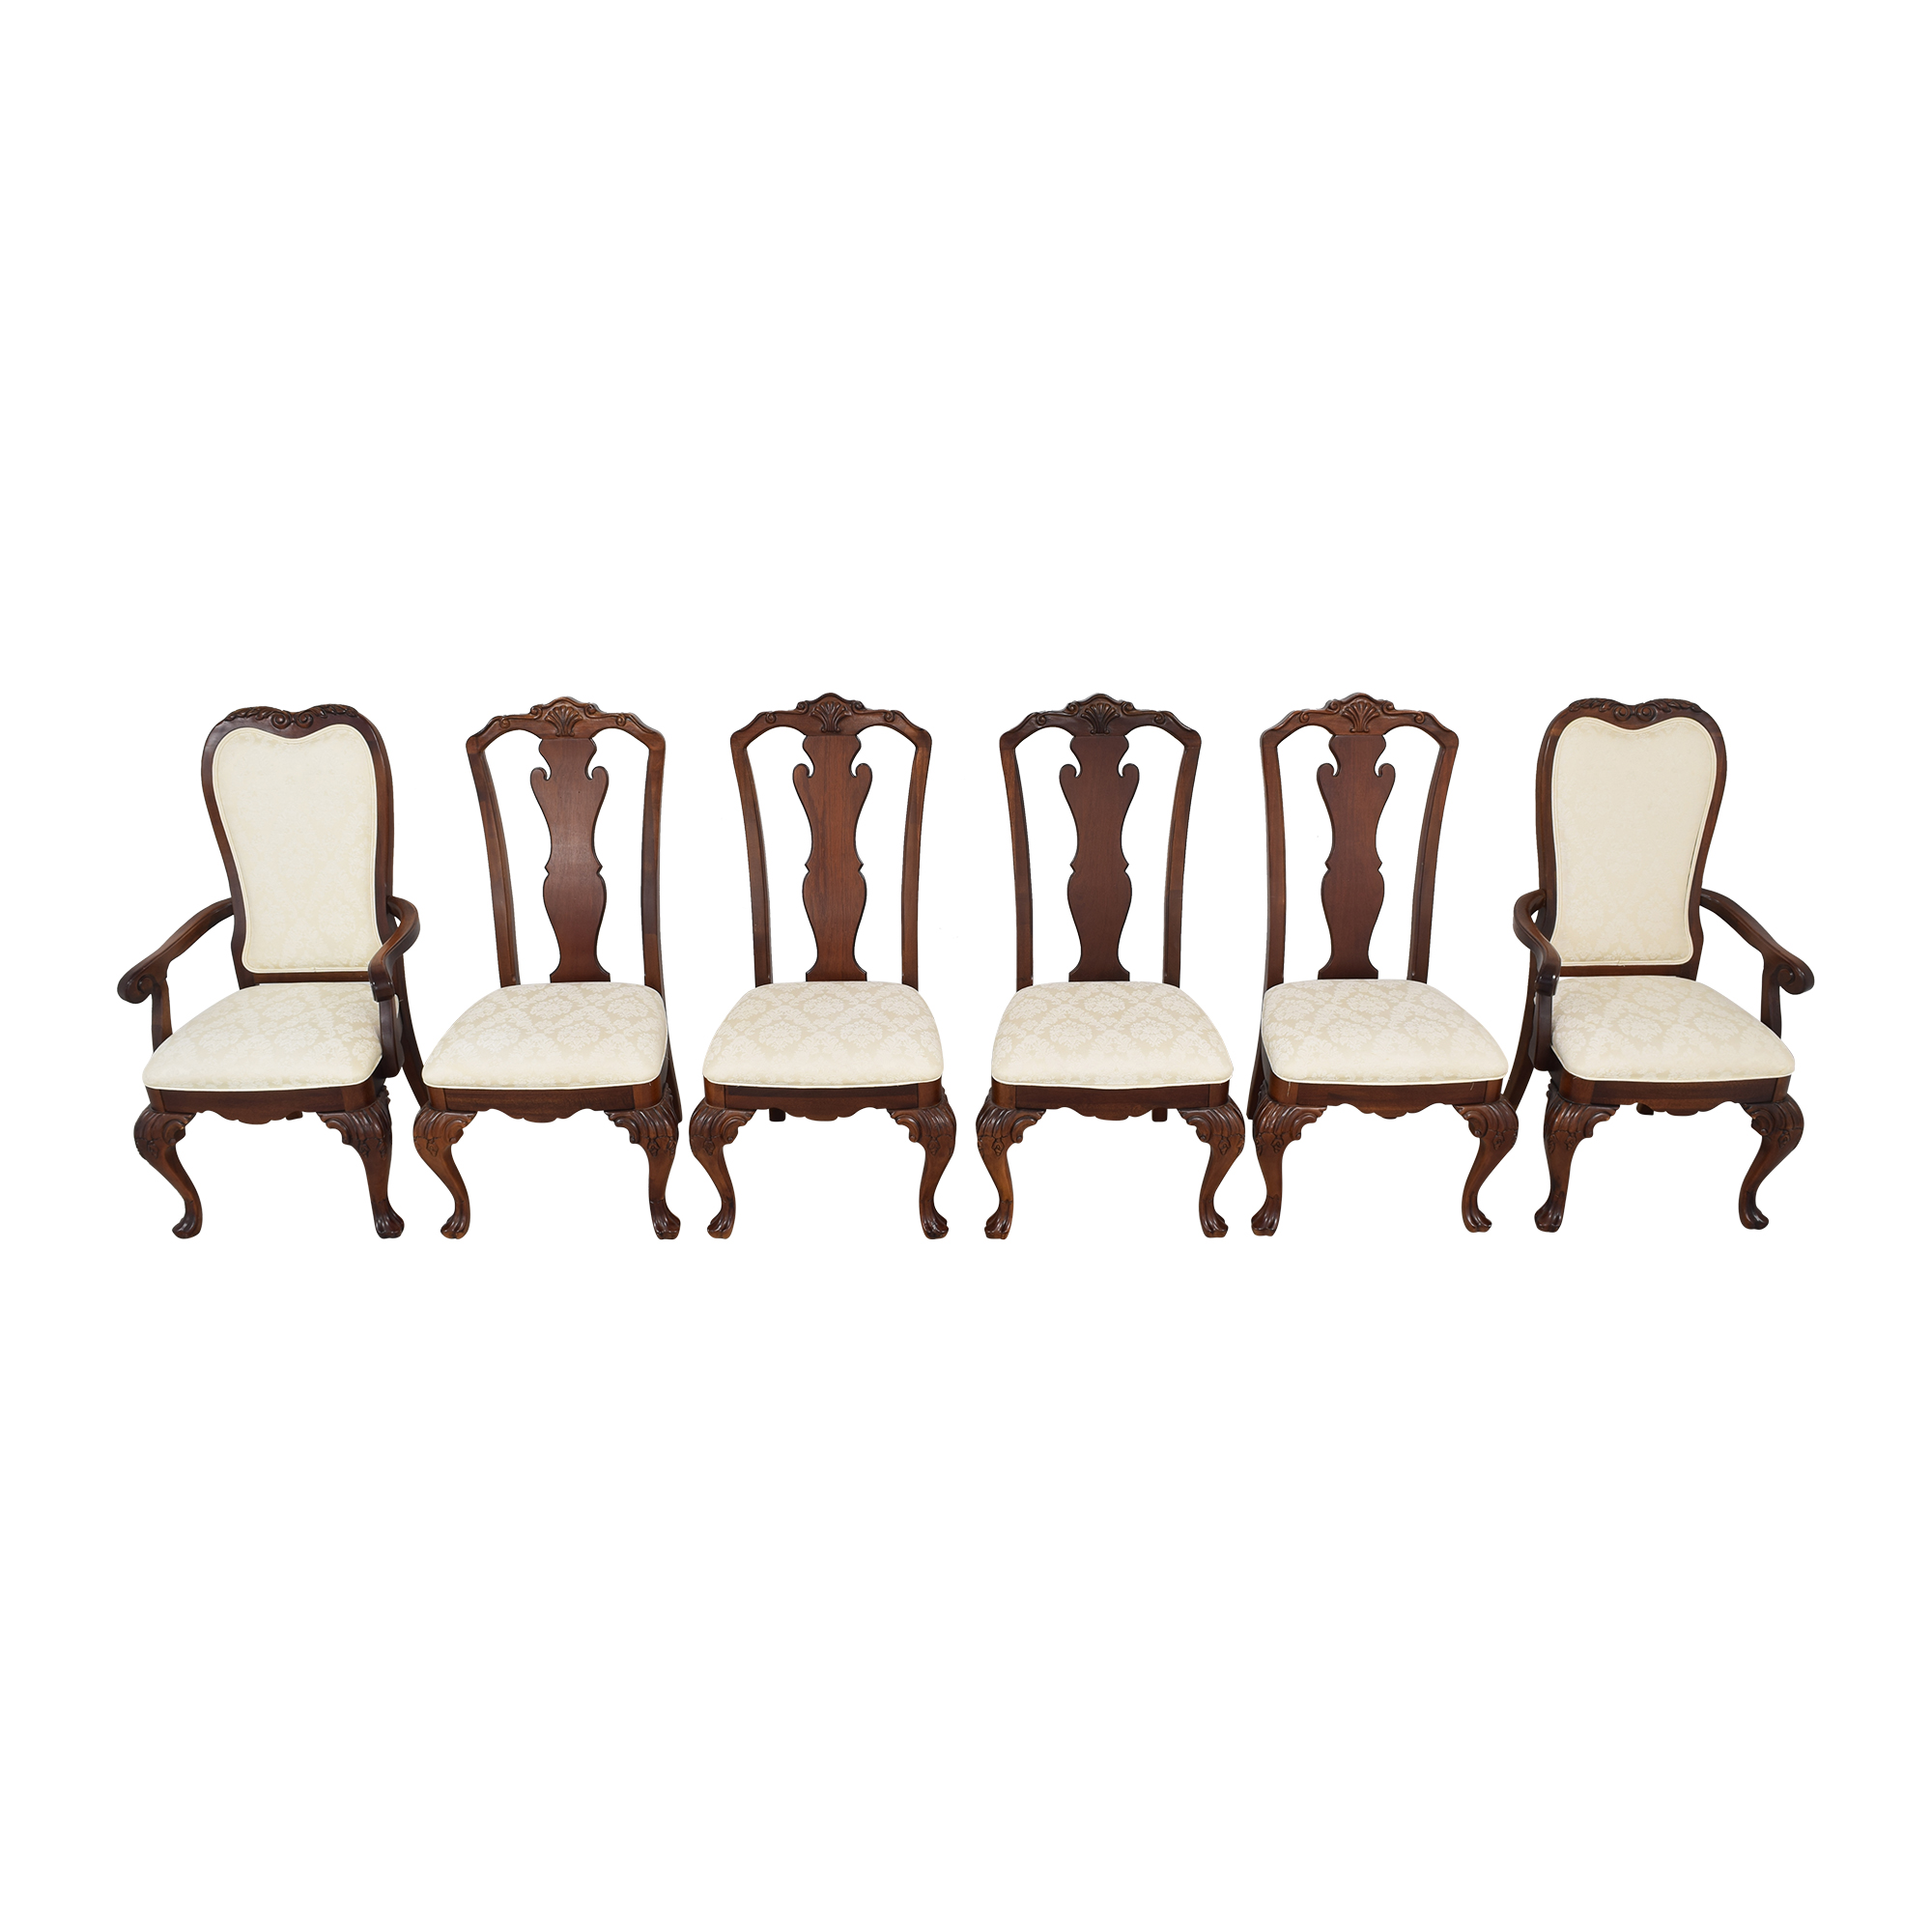 Thomasville Thomasville Upholstered Dining Chairs pa